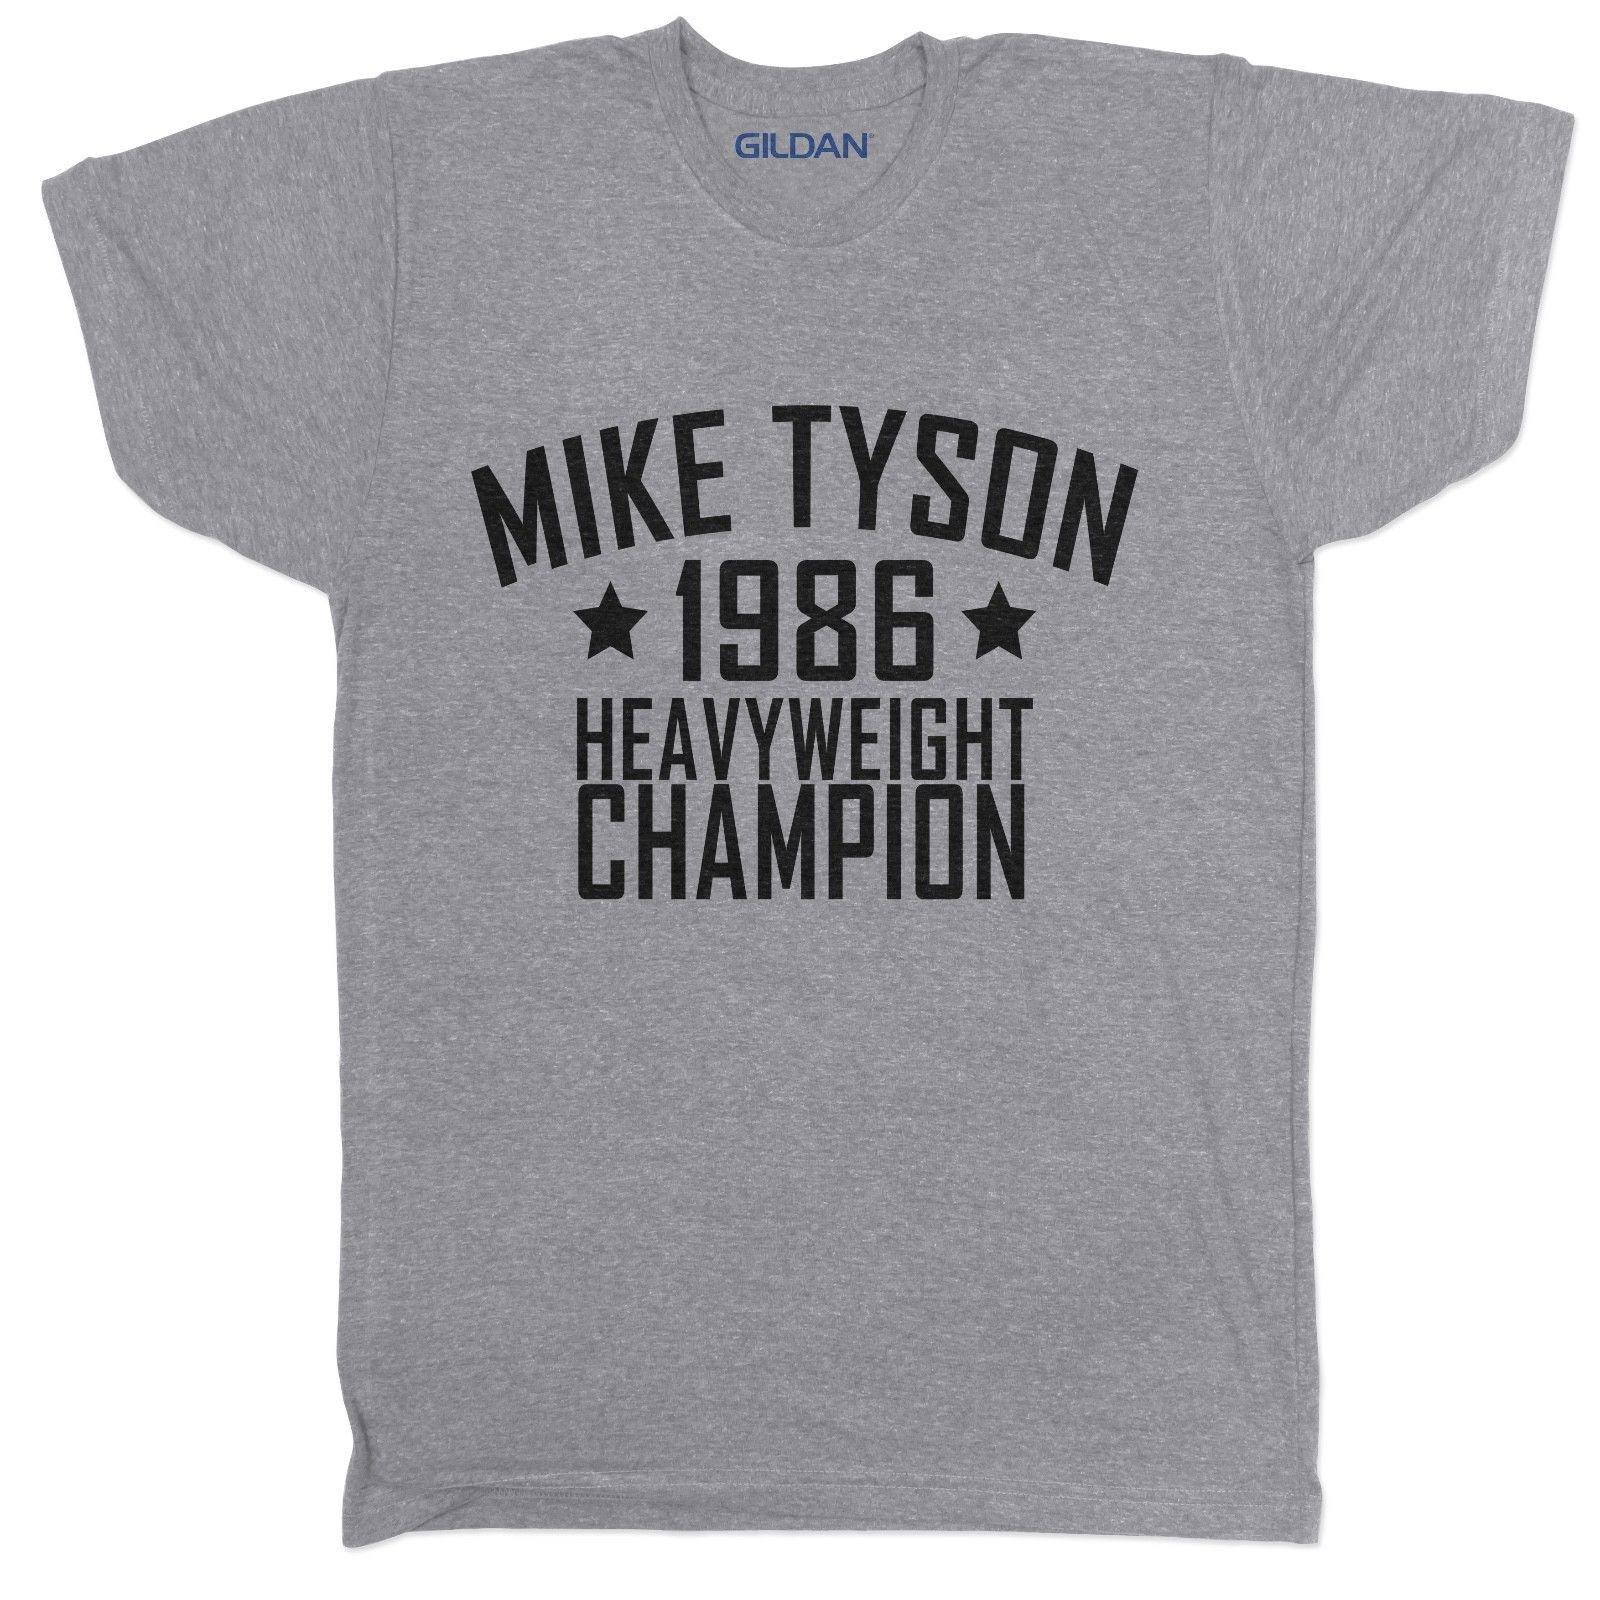 caddd9fd The Rock Tyson Boxing Brooklyn Gym WWF MMA UFC Bodybuilding T Shirt Tee S  It T Shirts From Notkillape, $11.01| DHgate.Com